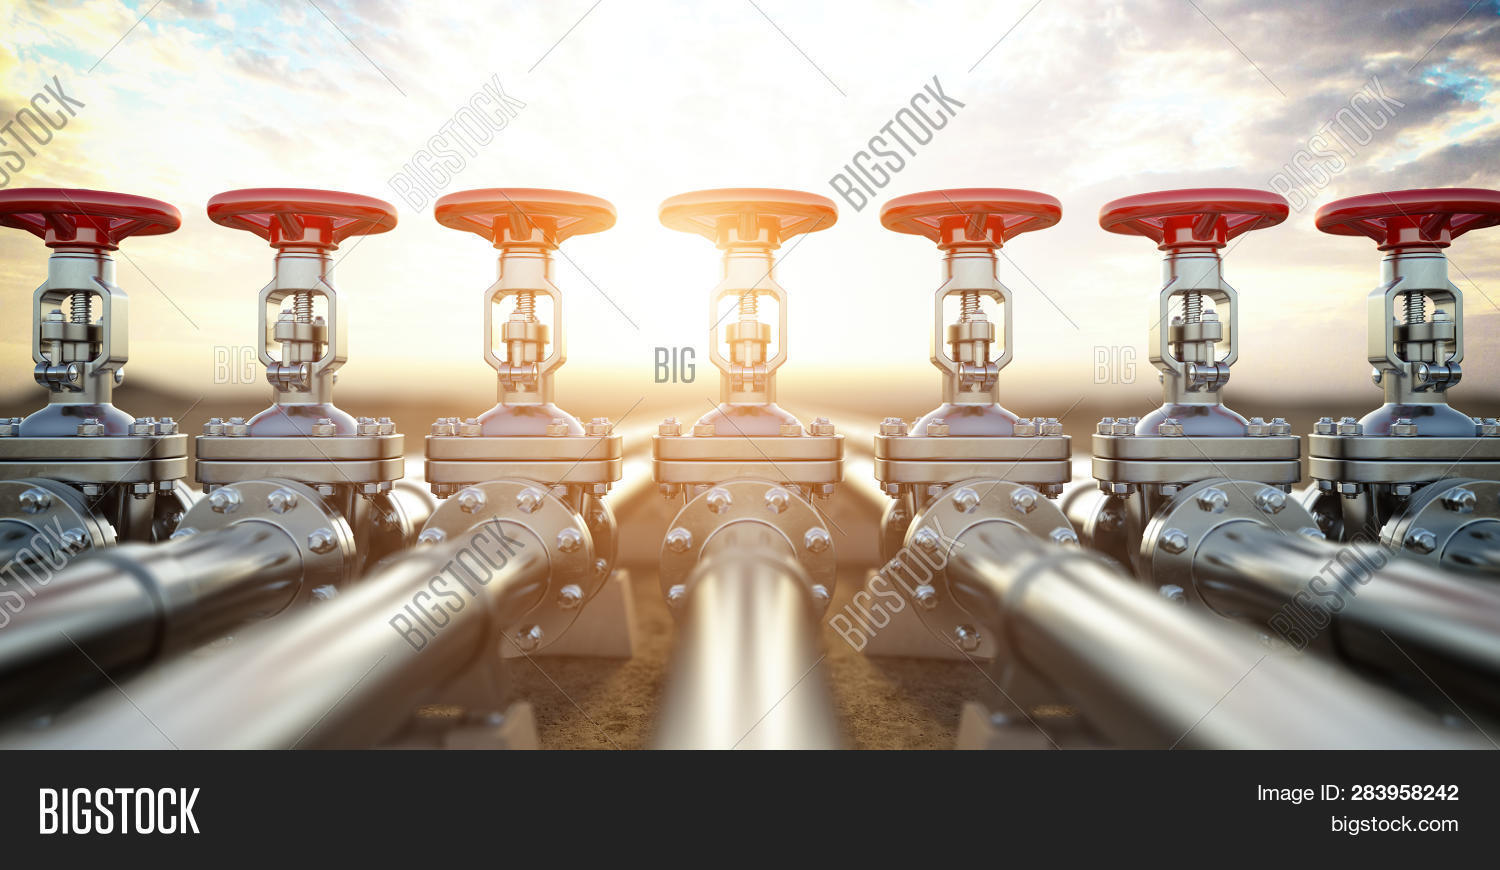 3d,abstract,background,bolt,business,chemical,connection,construction,control,energy,engineering,equipment,factory,faucet,fuel,gas,gasoline,illustration,industrial,industry,iron,line,machine,metal,natural,oil,petrochemical,petroleum,pipe,pipeline,pipes,piping,plant,plumbing,pollution,power,production,pump,red,refinery,stainless,station,steel,supply,system,technology,transportation,tube,valve,water